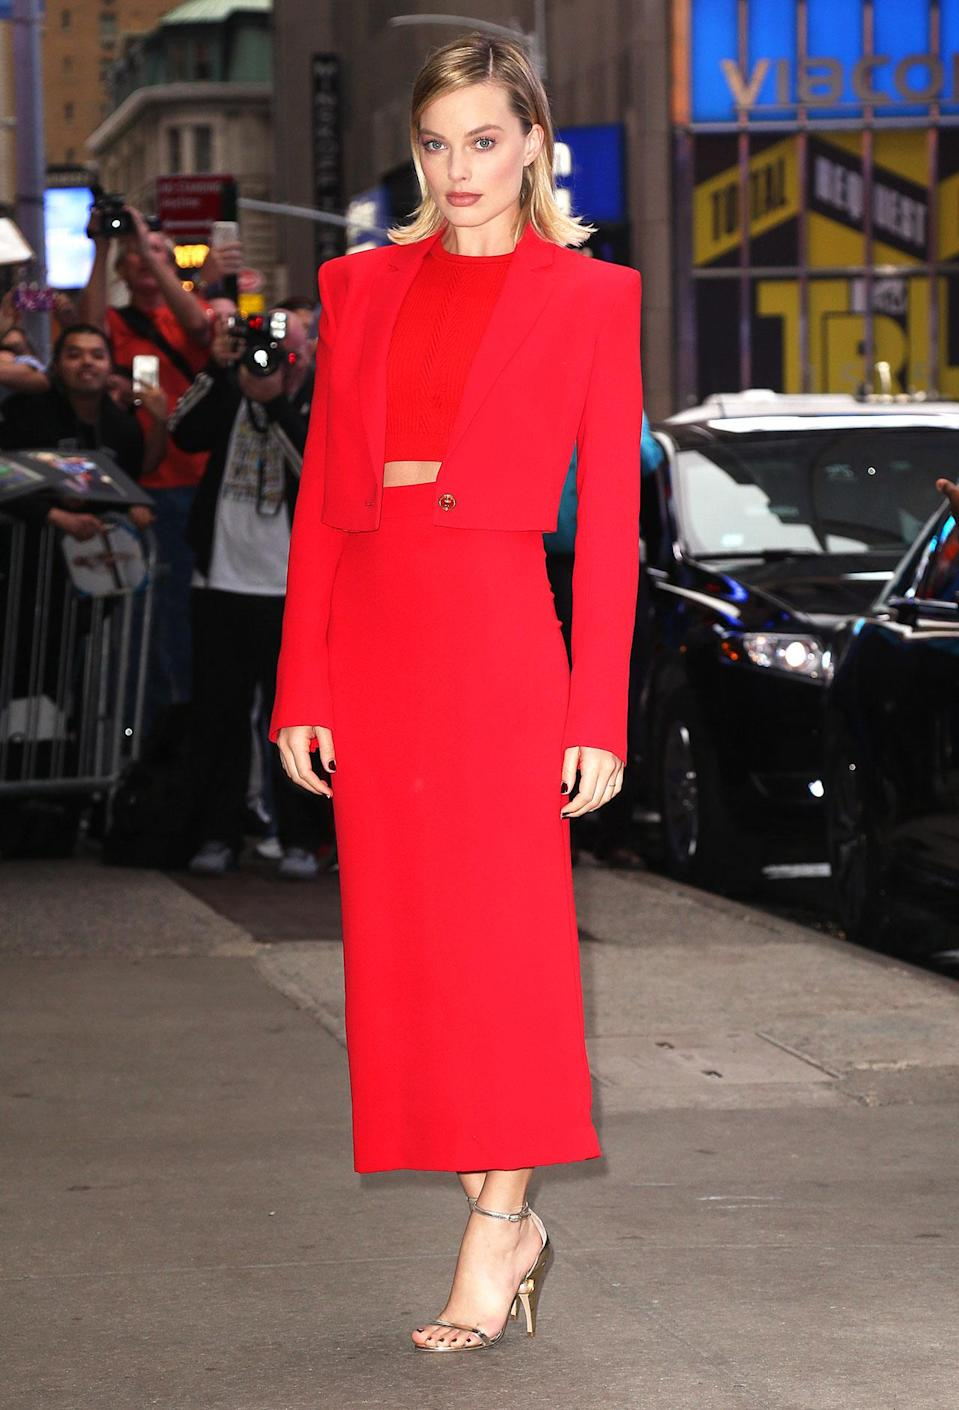 <h2>In Versace And Nicholas Kirkwood Heels</h2> <p>Arriving for an appearance on <em>Good Morning America</em> in New York City, 2017</p> <h4>Splash News</h4>